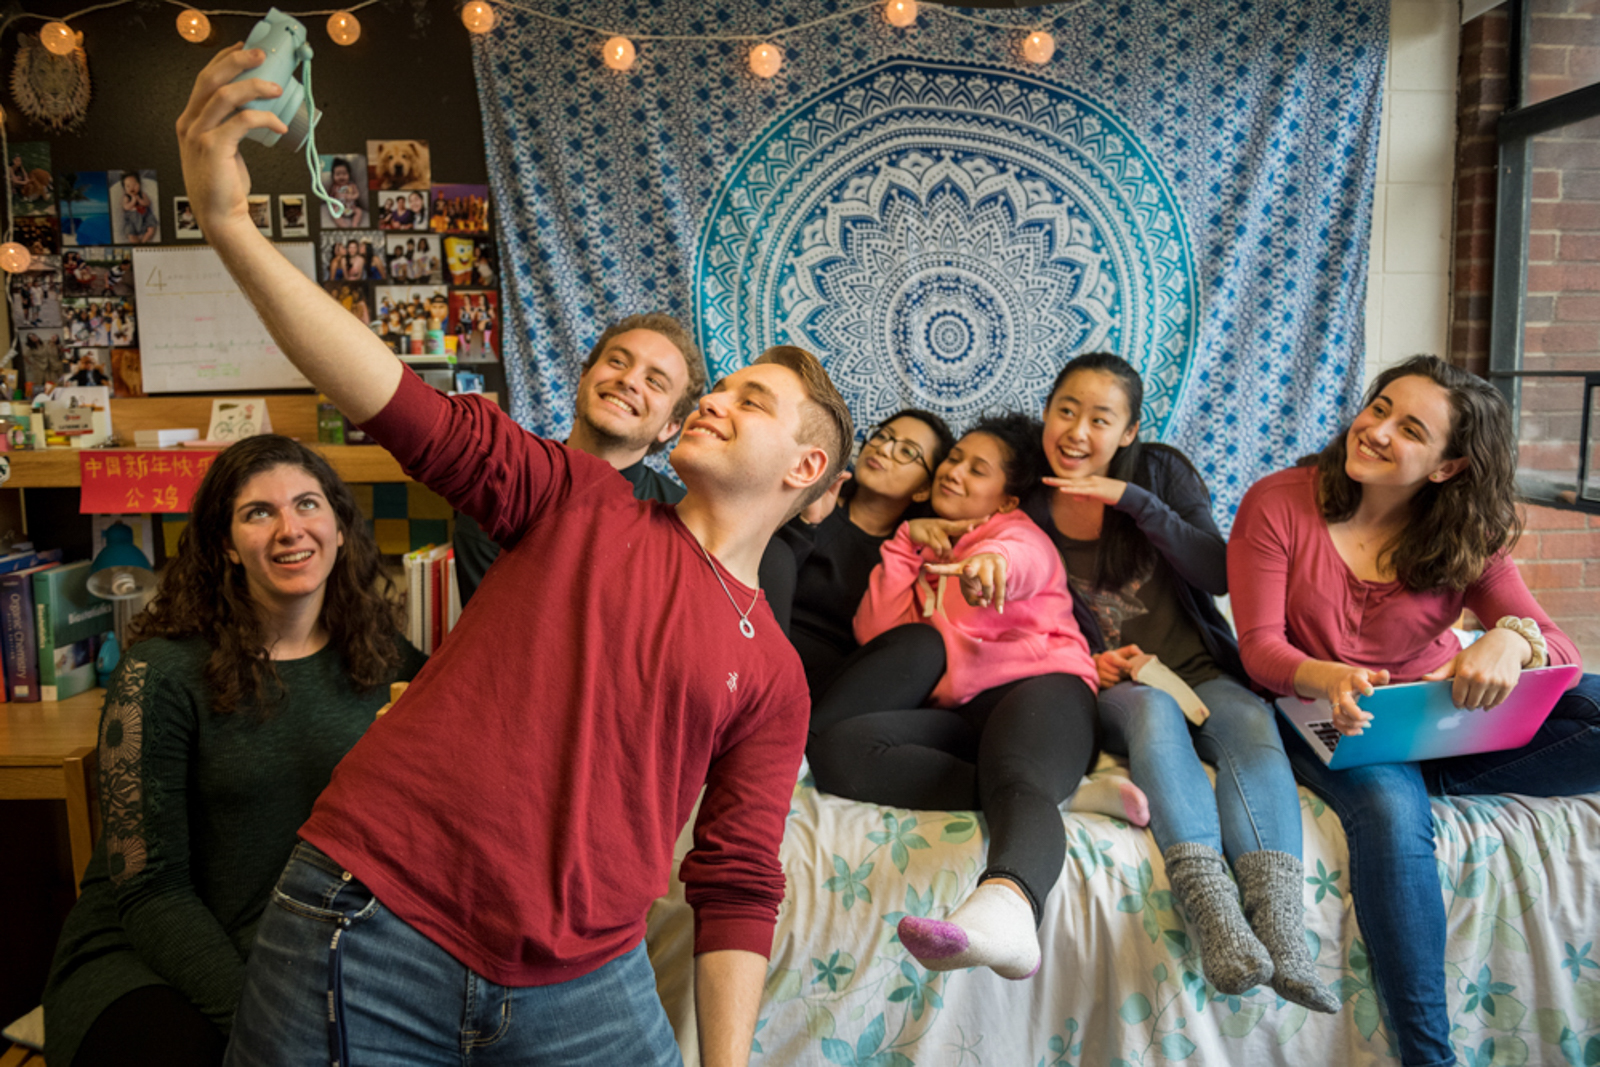 Group of students hanging out in dorm room, taking a fun selfie with an instant camera